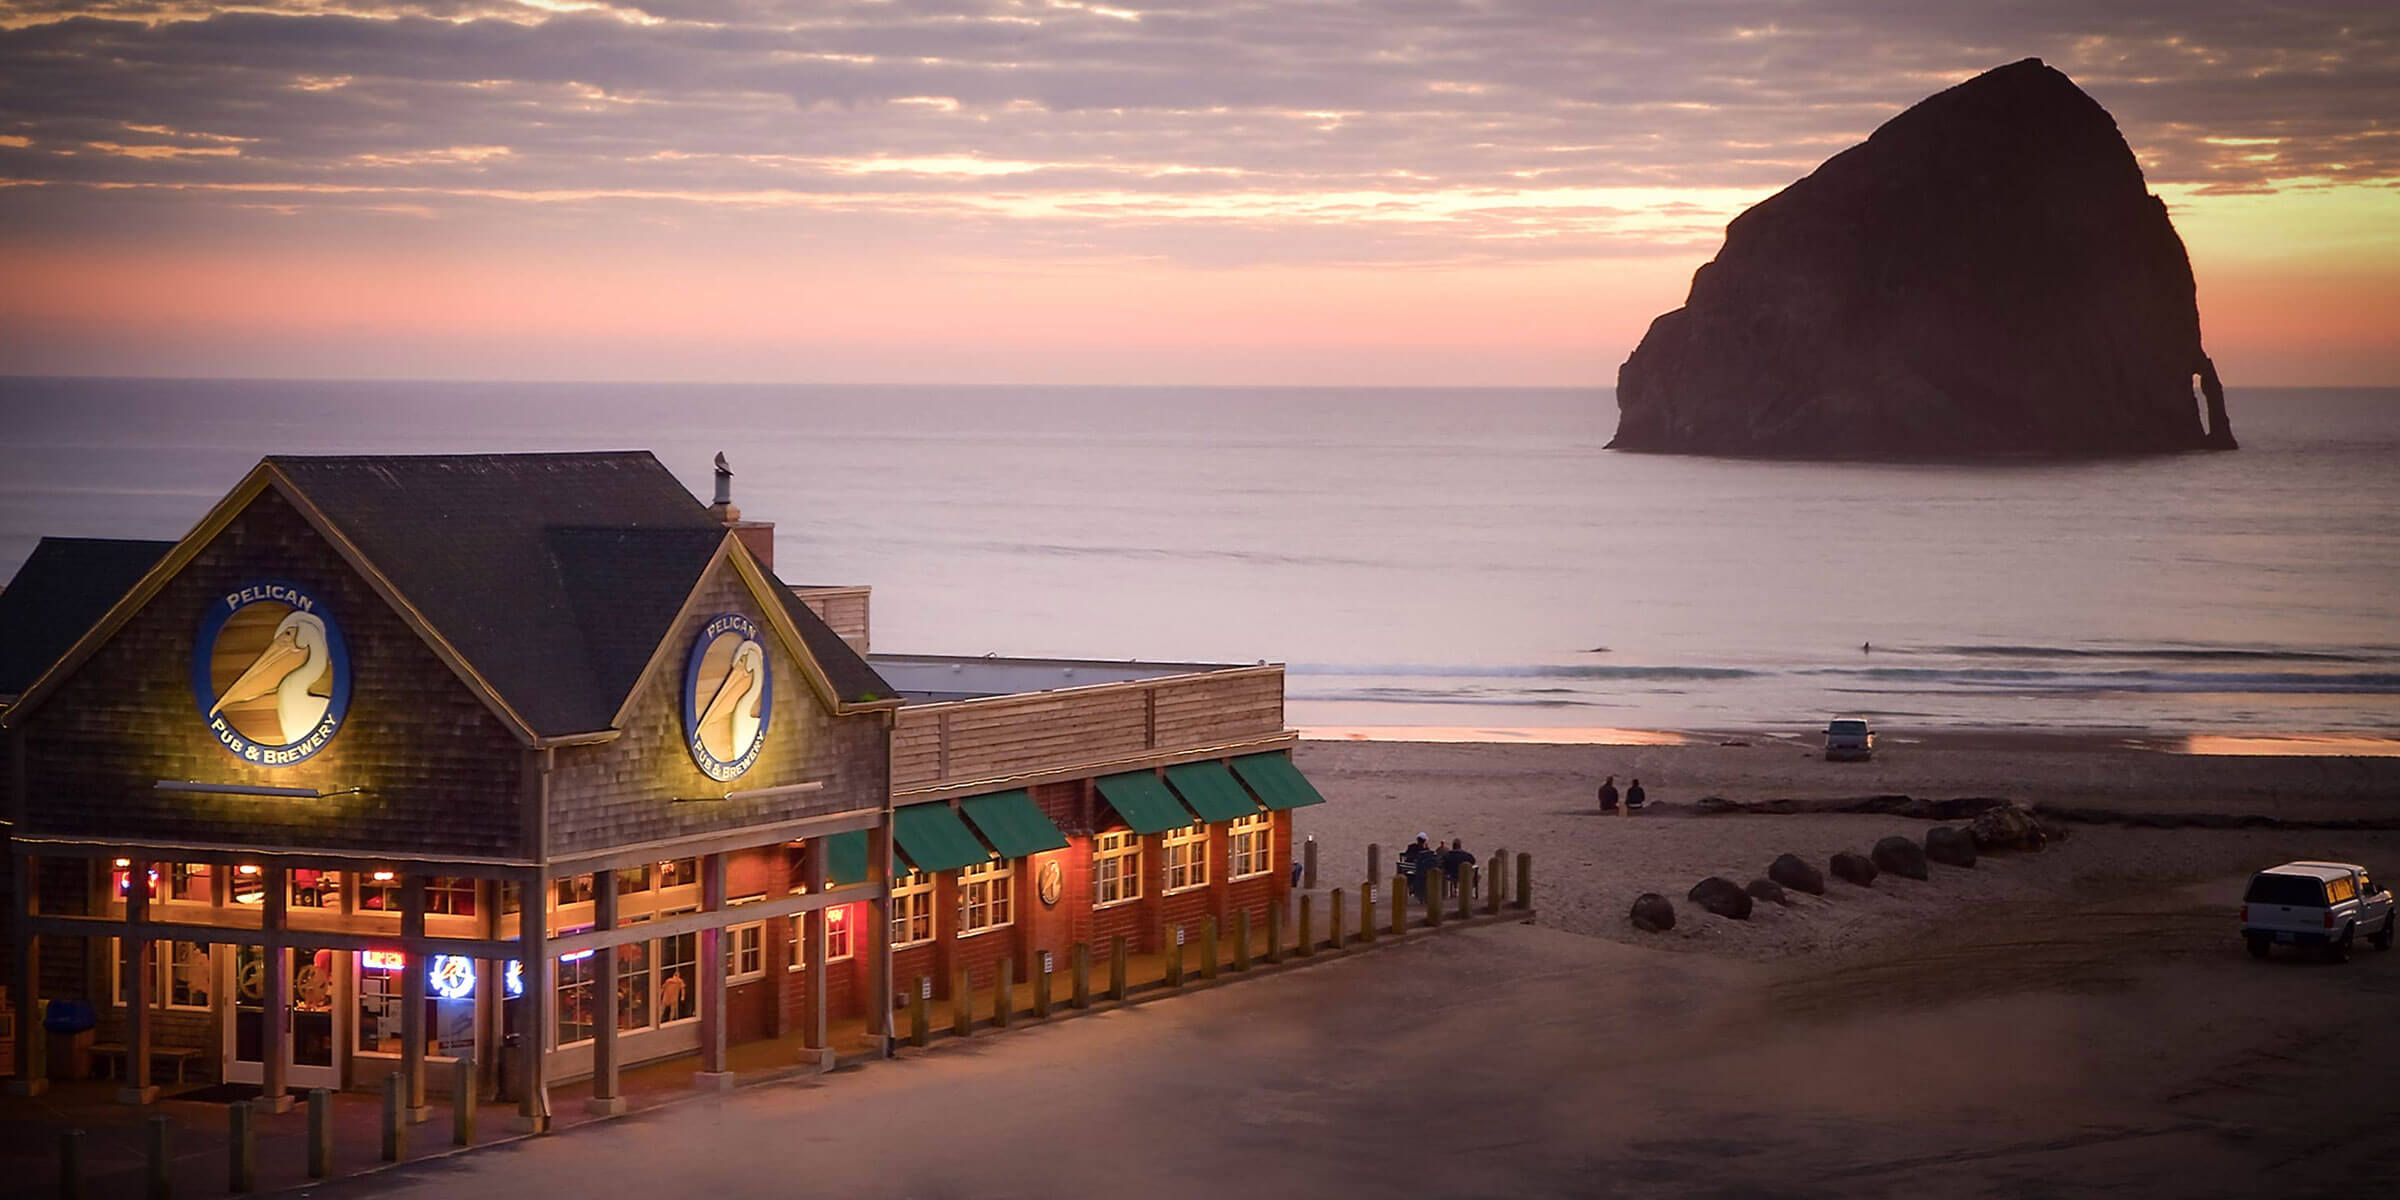 Outside the Pelican Brewing Company location on Cannon Beach at sunset